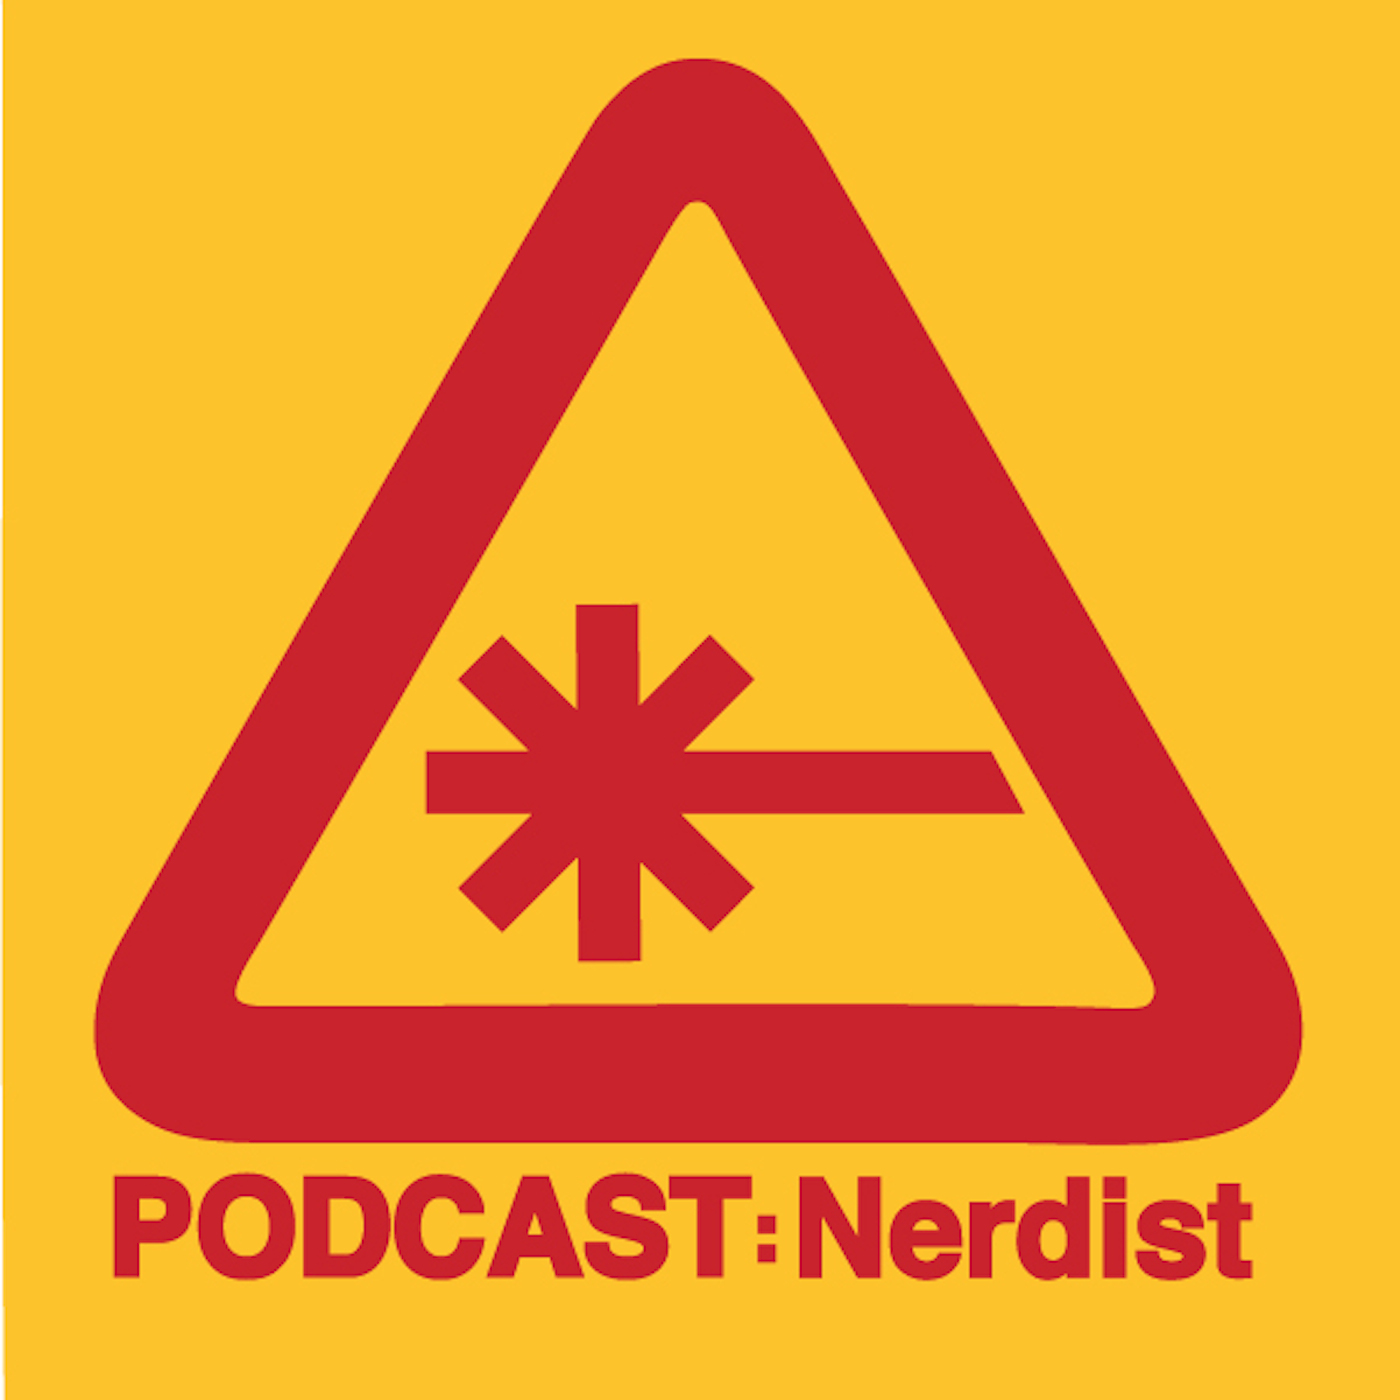 The Nerdist logo